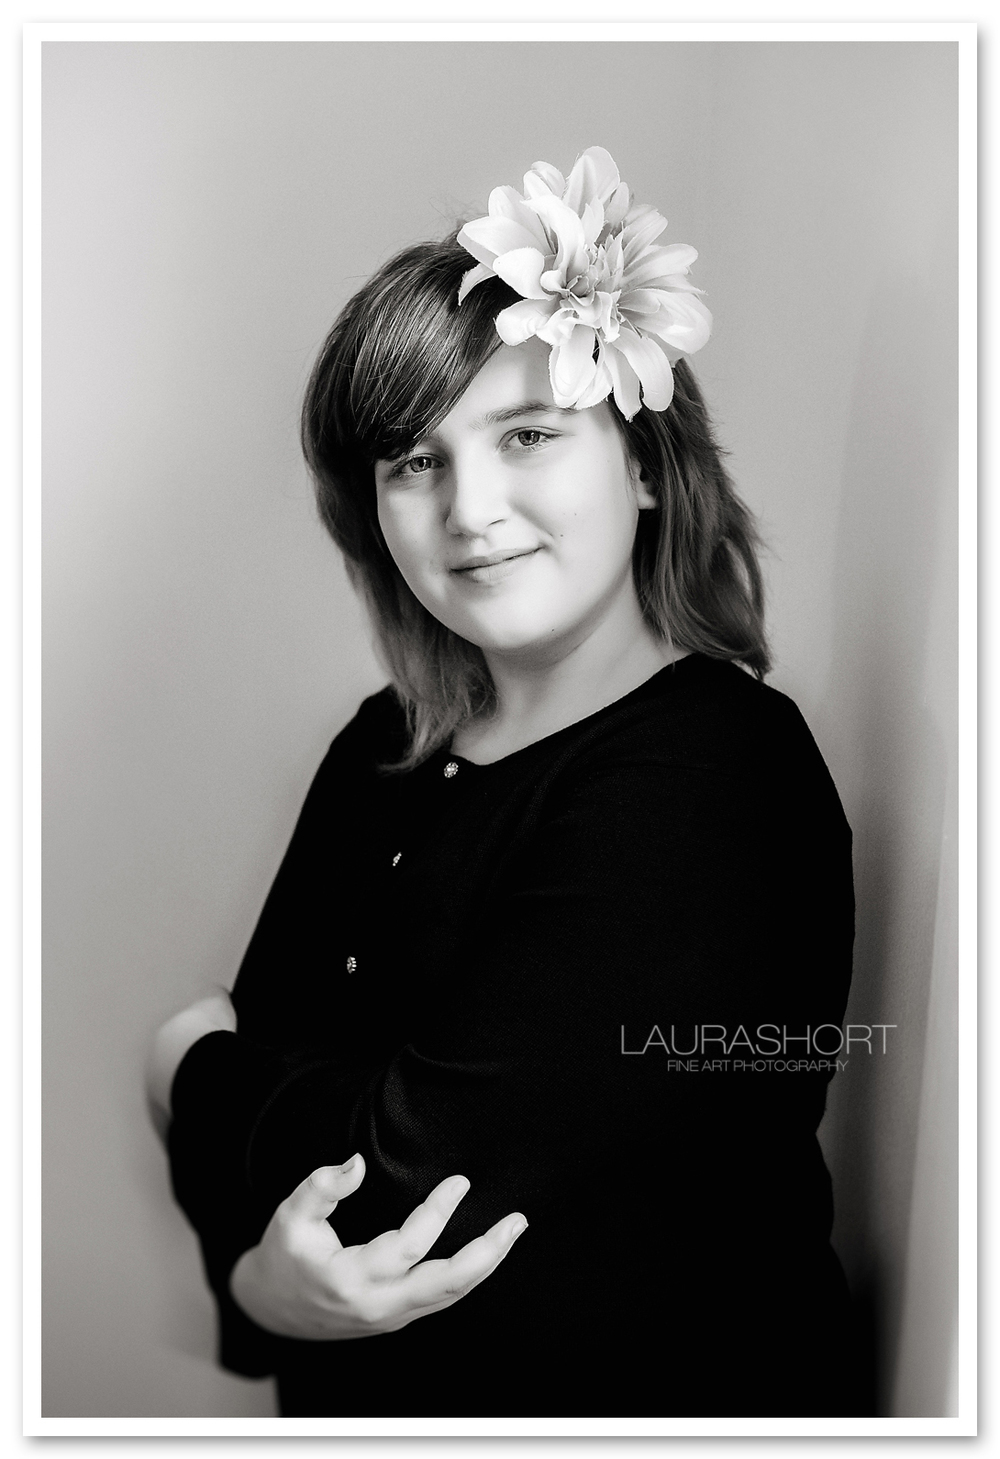 parsippany tween photography